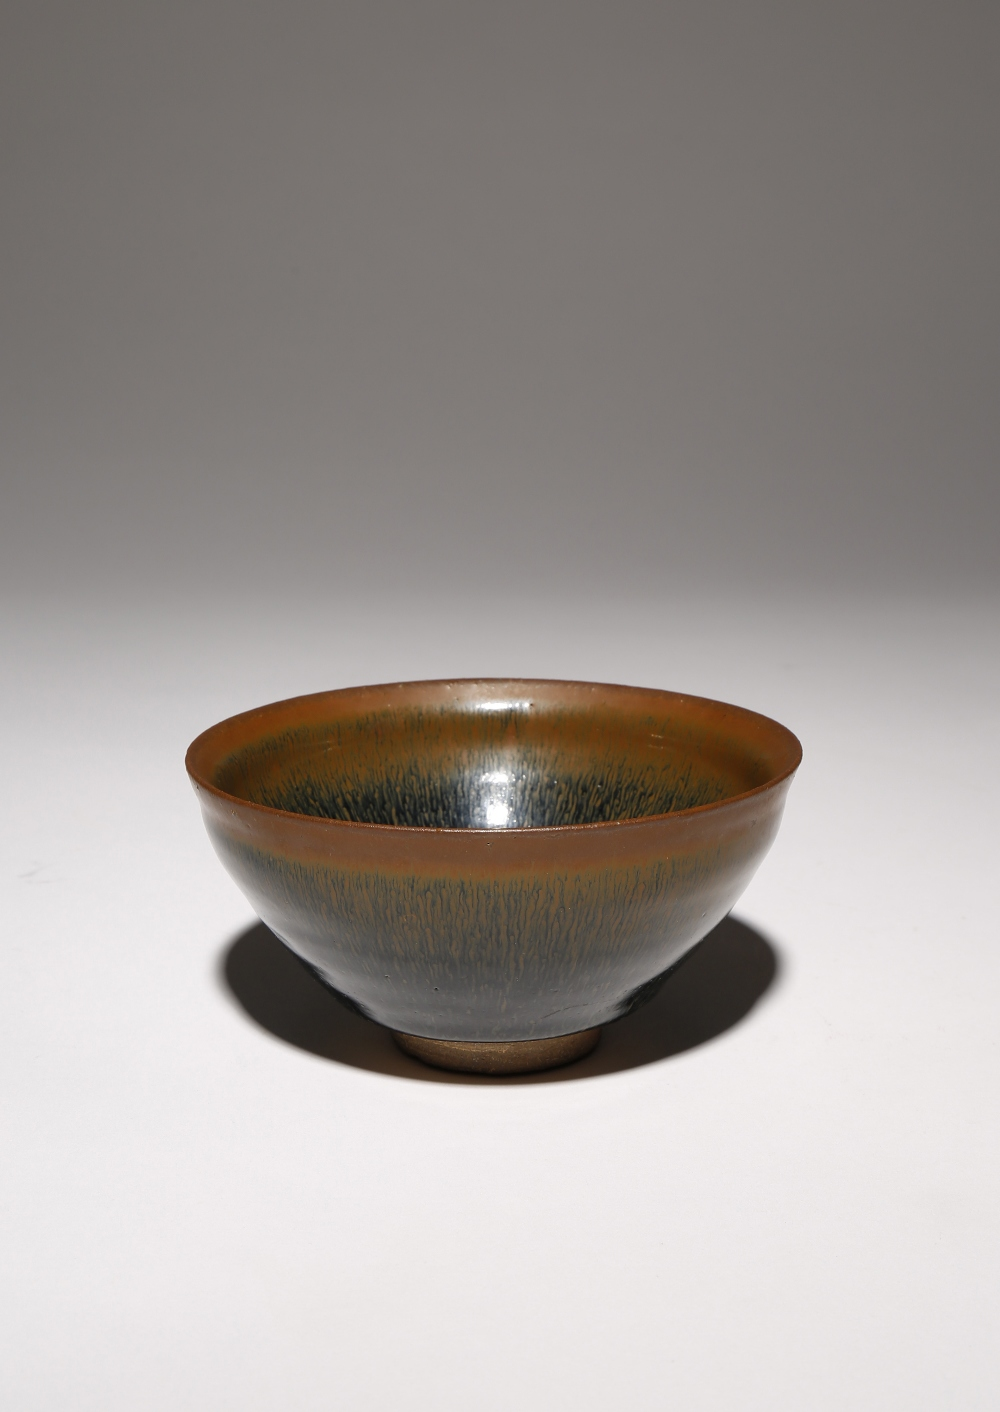 A CHINESE JIAN BOWL SONG DYNASTY The deep conical body decorated in a thick 'hare's fur' glaze, with